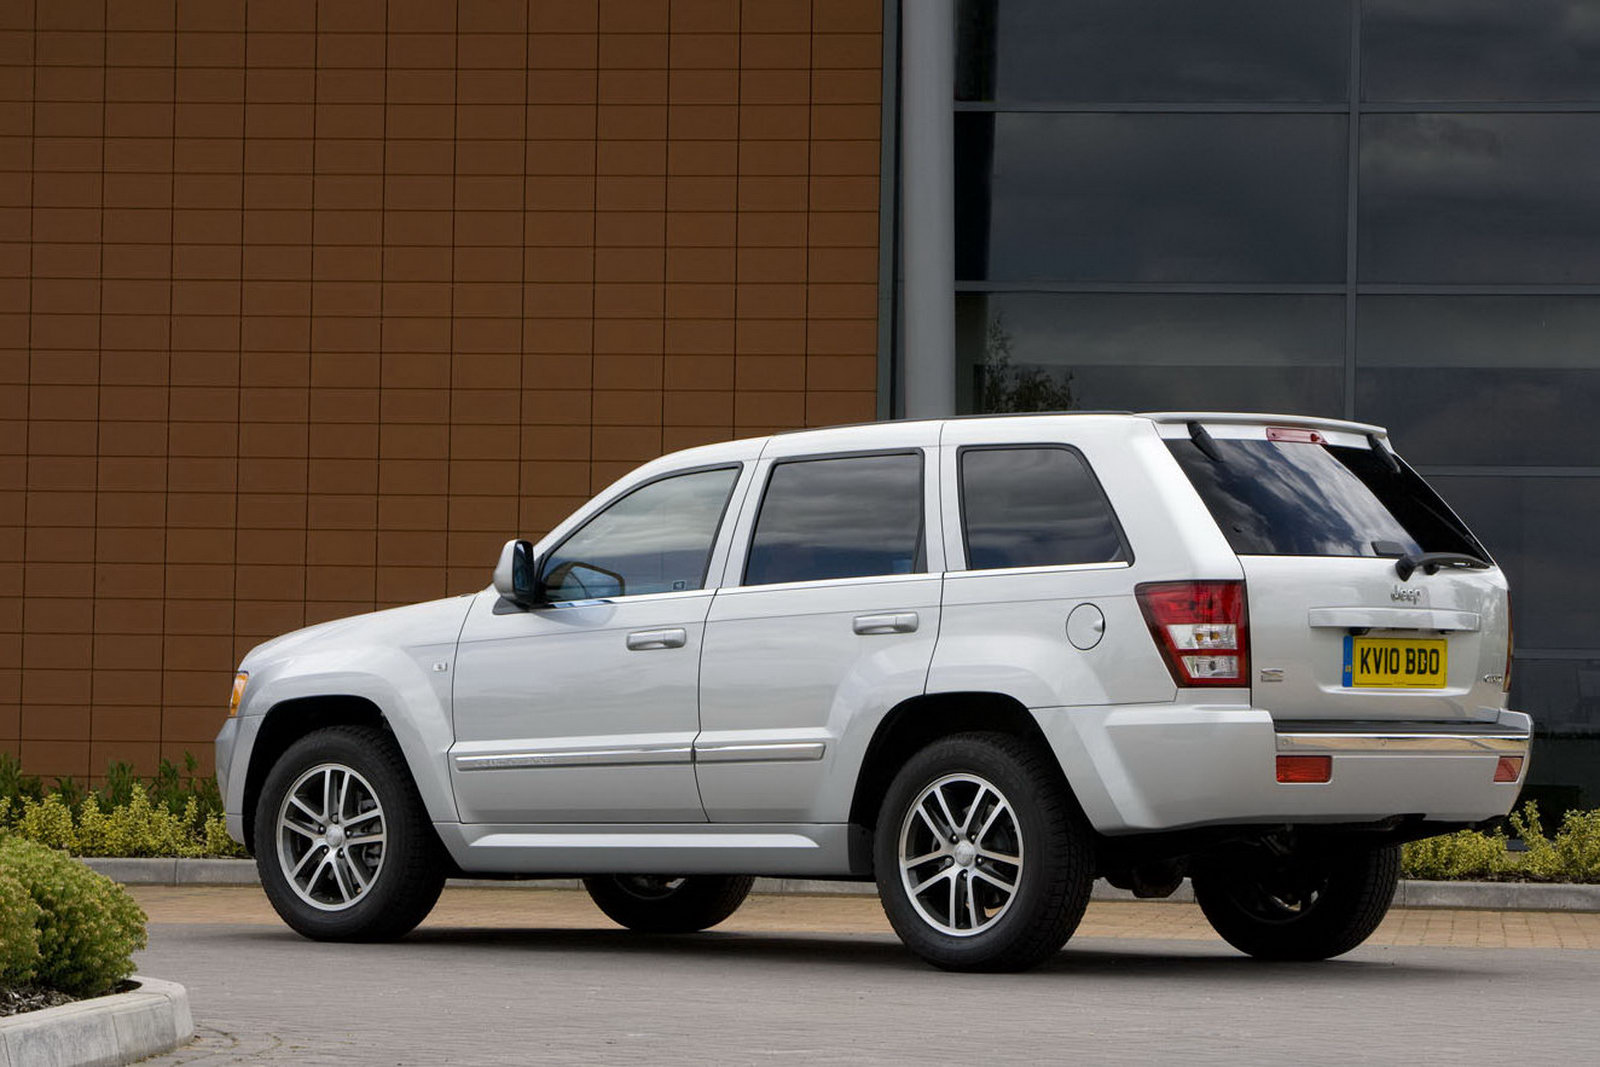 jeep uk reheats 2010 grand cherokee leftovers with srt-inspired